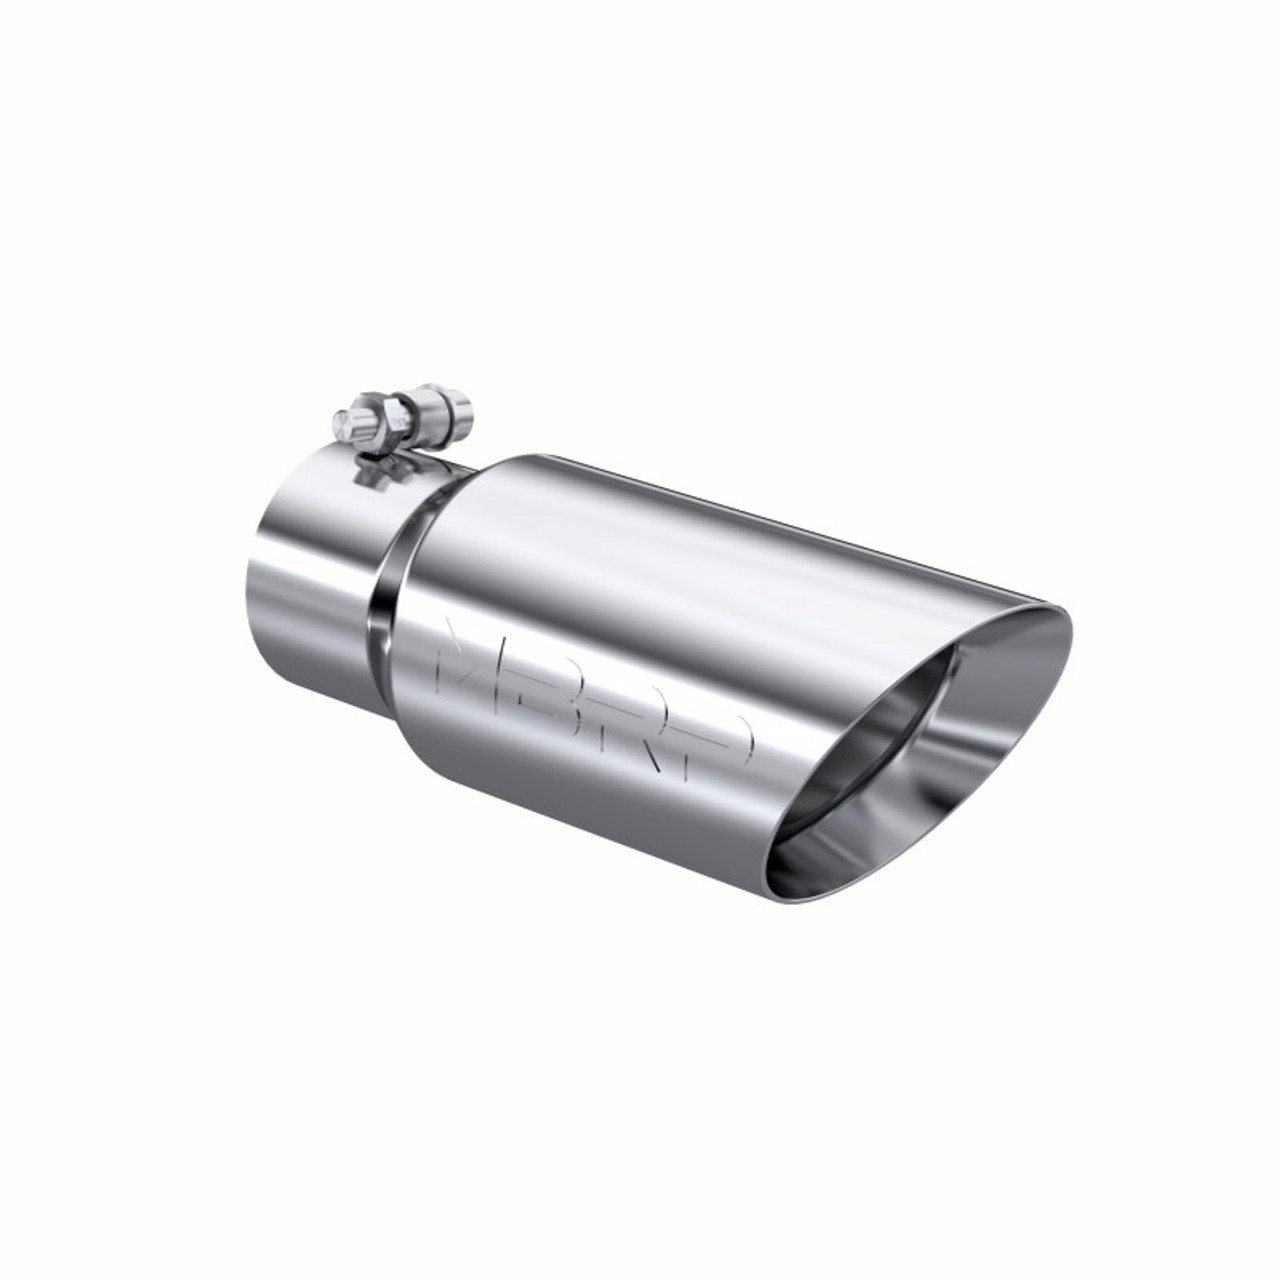 tip 4 o d dual wall angled 3 inlet 10 length t304